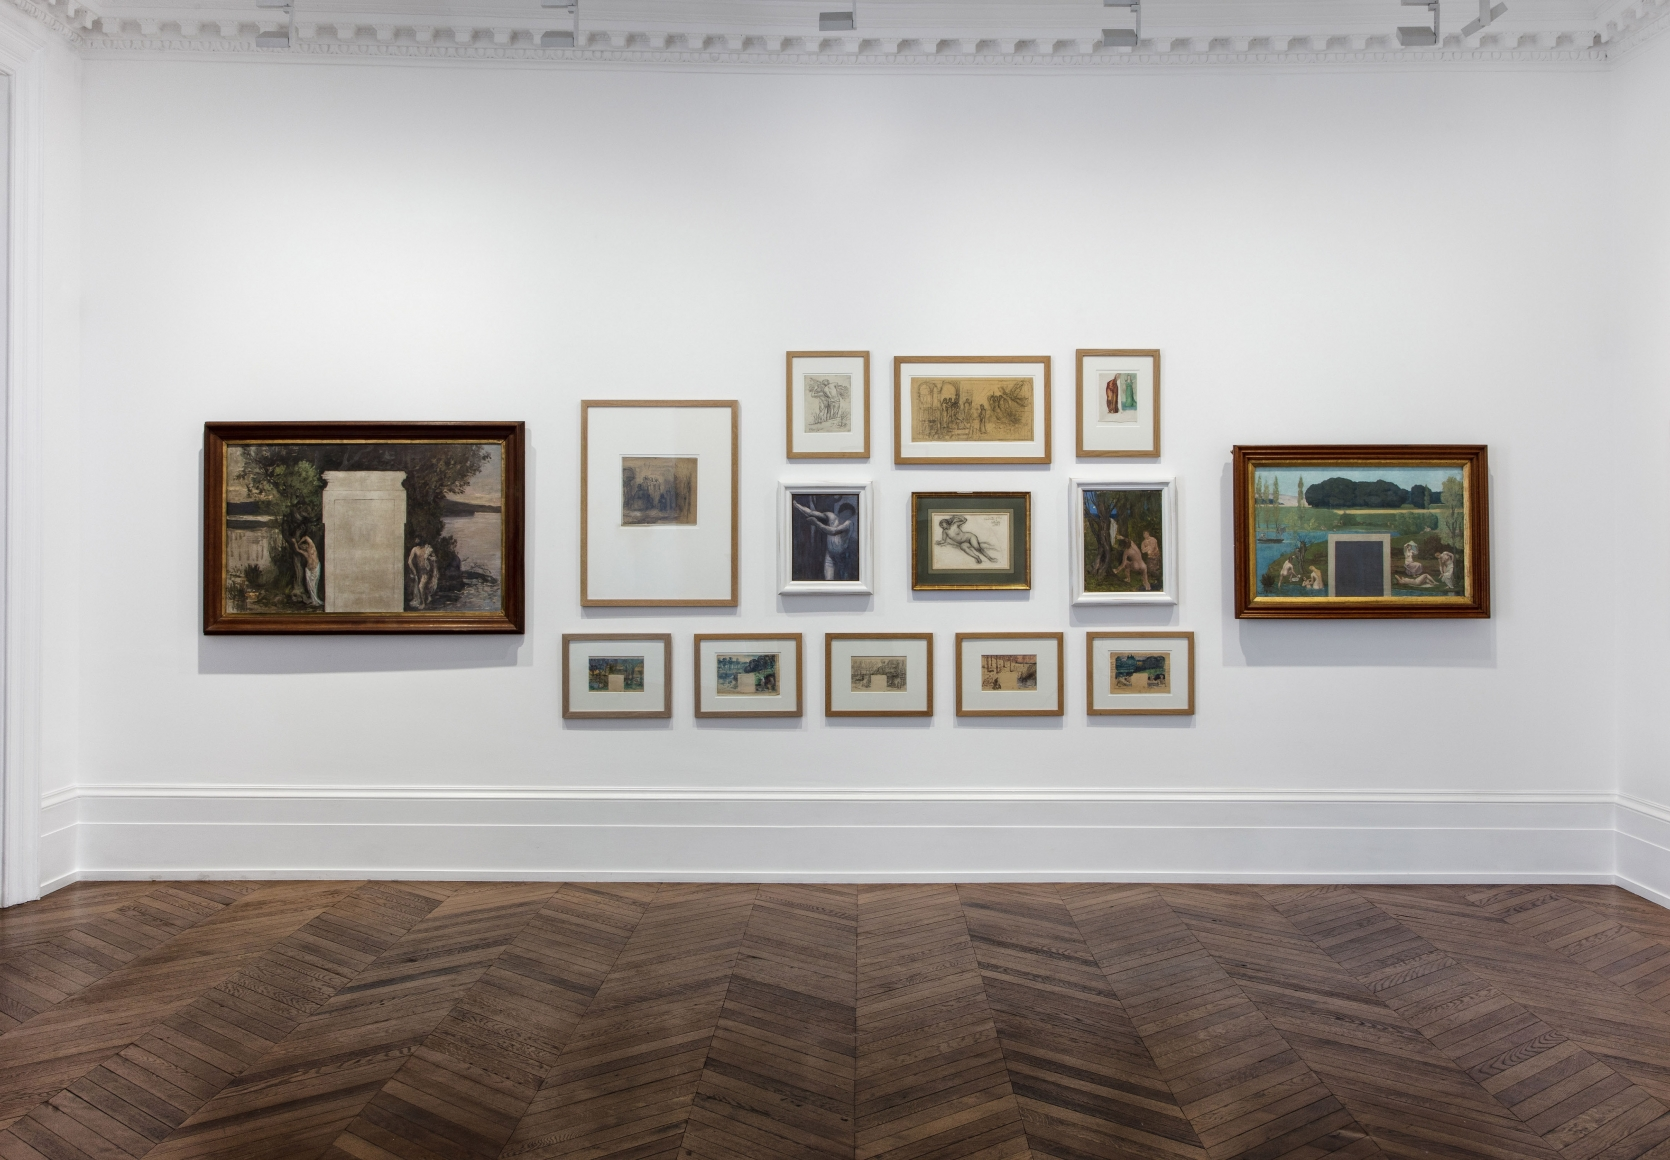 PIERRE PUVIS DE CHAVANNES, Works on Paper and Paintings, London, 2018, Installation Image 11